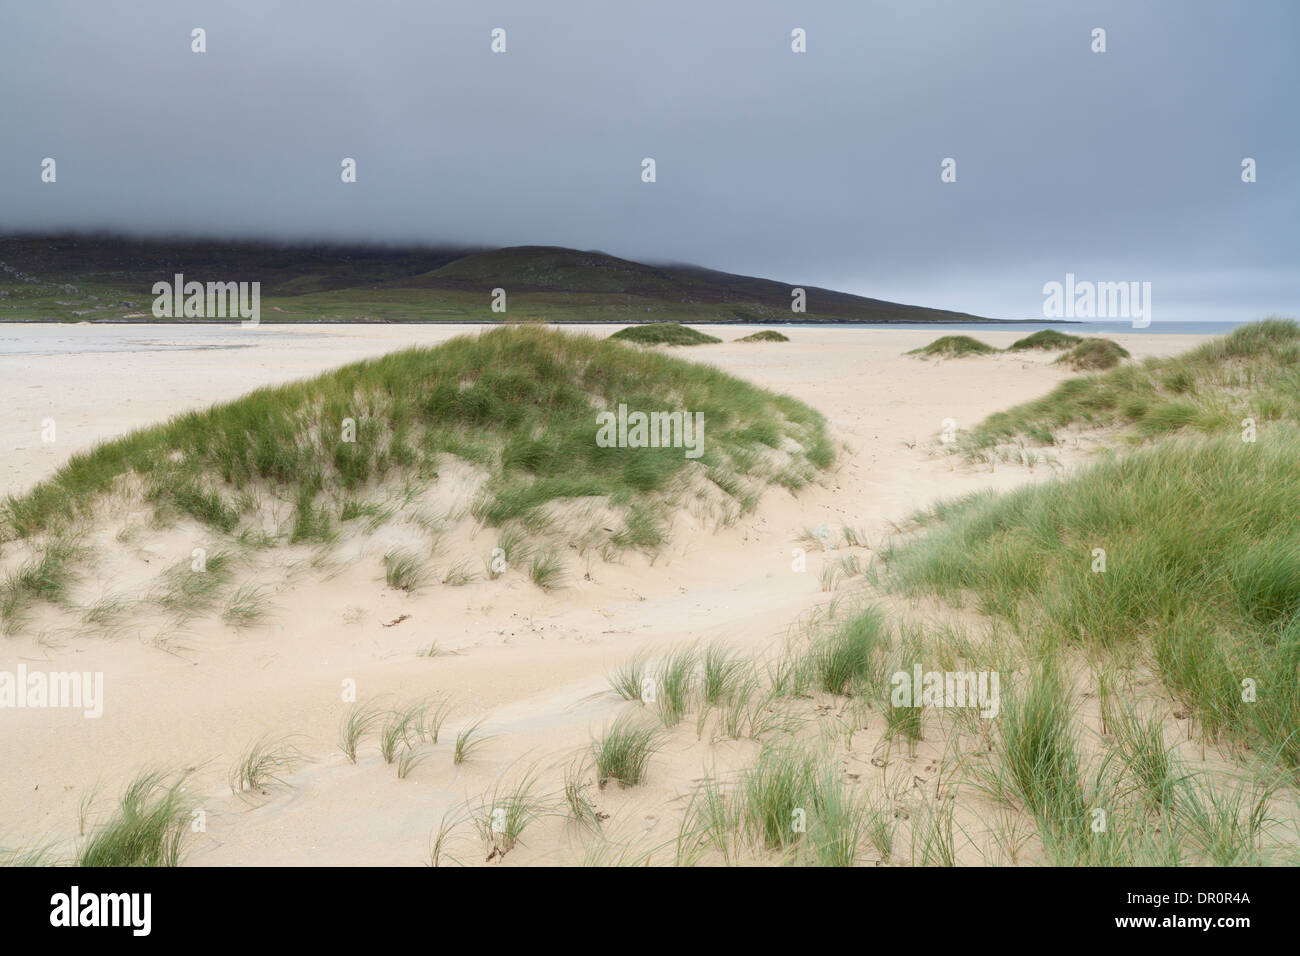 A view of the beautiful beach at Scarista, Isle of Harris, Outer Hebrides, Scotland - Stock Image